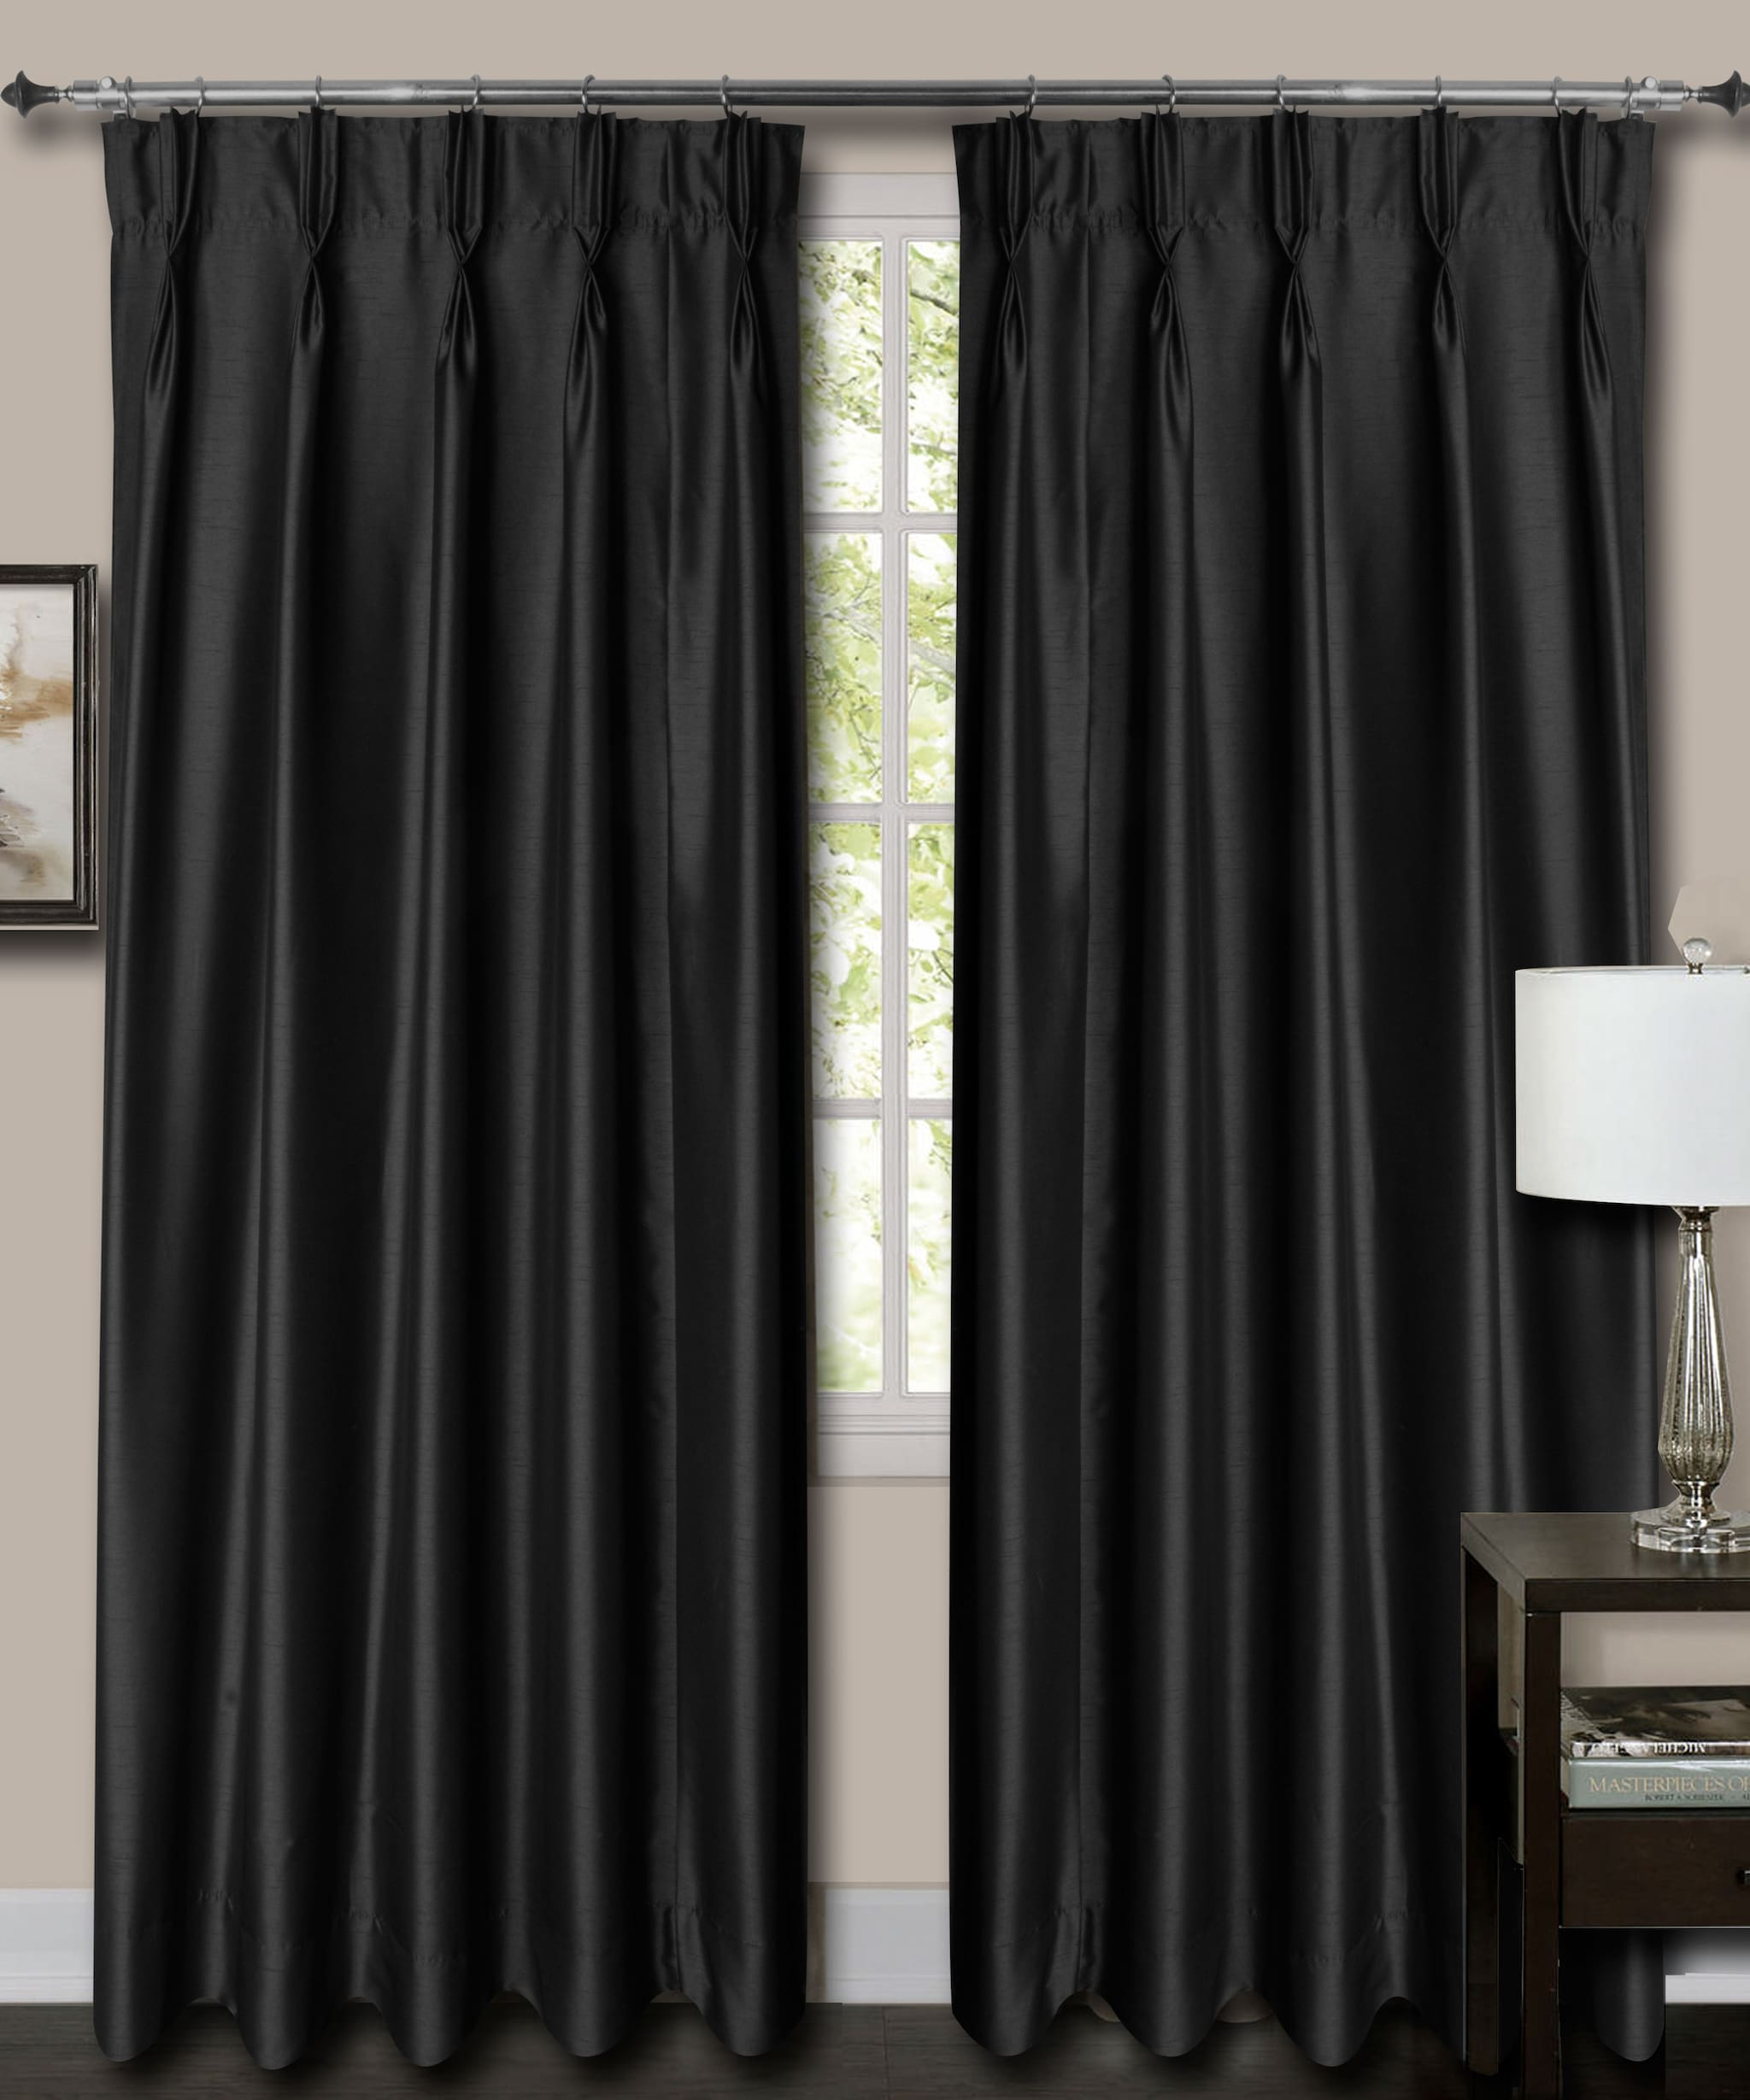 "French Pleat Top Black Faux Silk Dupioni Curtains. (39"" Wide,14 Feet Long,Blackout Lining)"